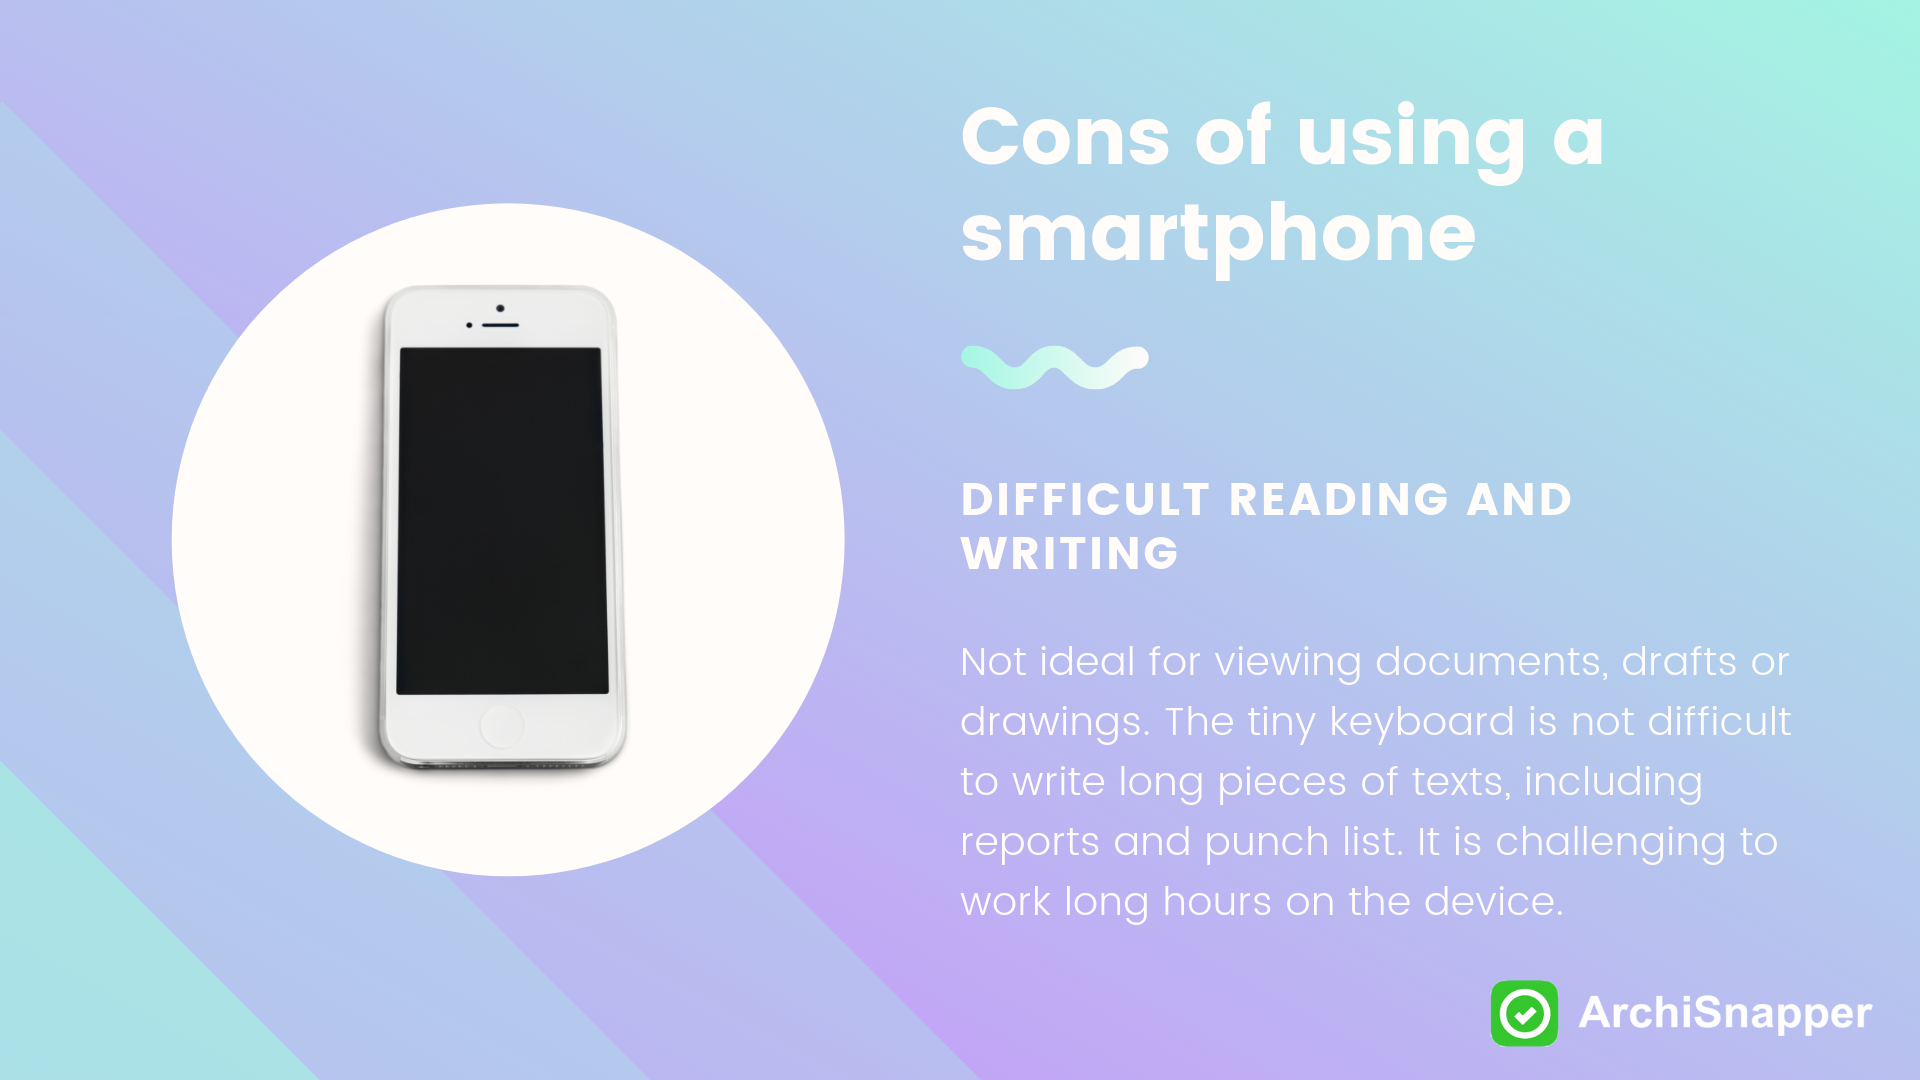 Cons of using a smartphone | ArchiSnapper